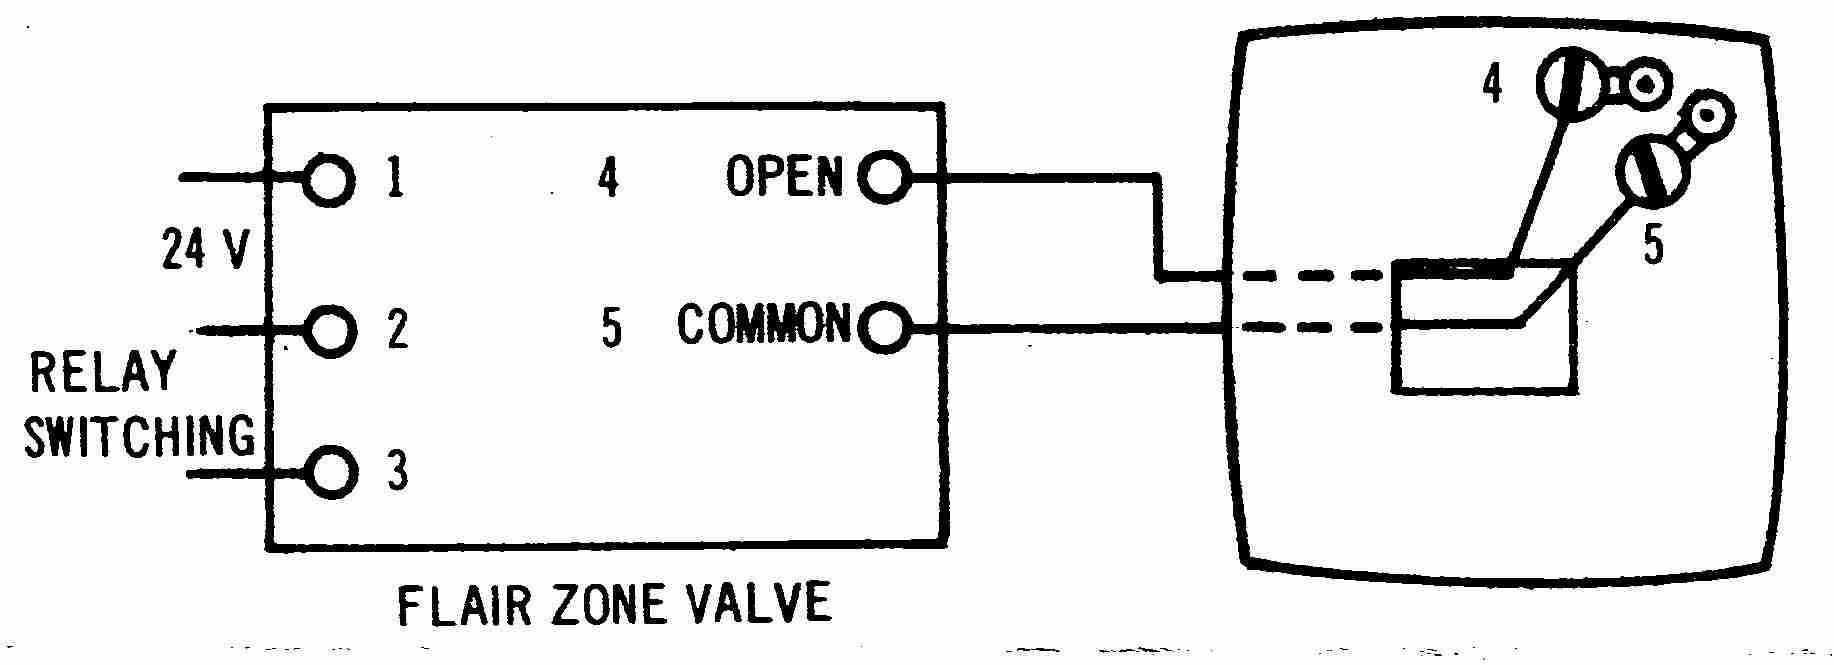 Room Thermostat Wiring Diagrams For Hvac Systems Relay Schematic Flair 2 Wire Thermosat Diagram